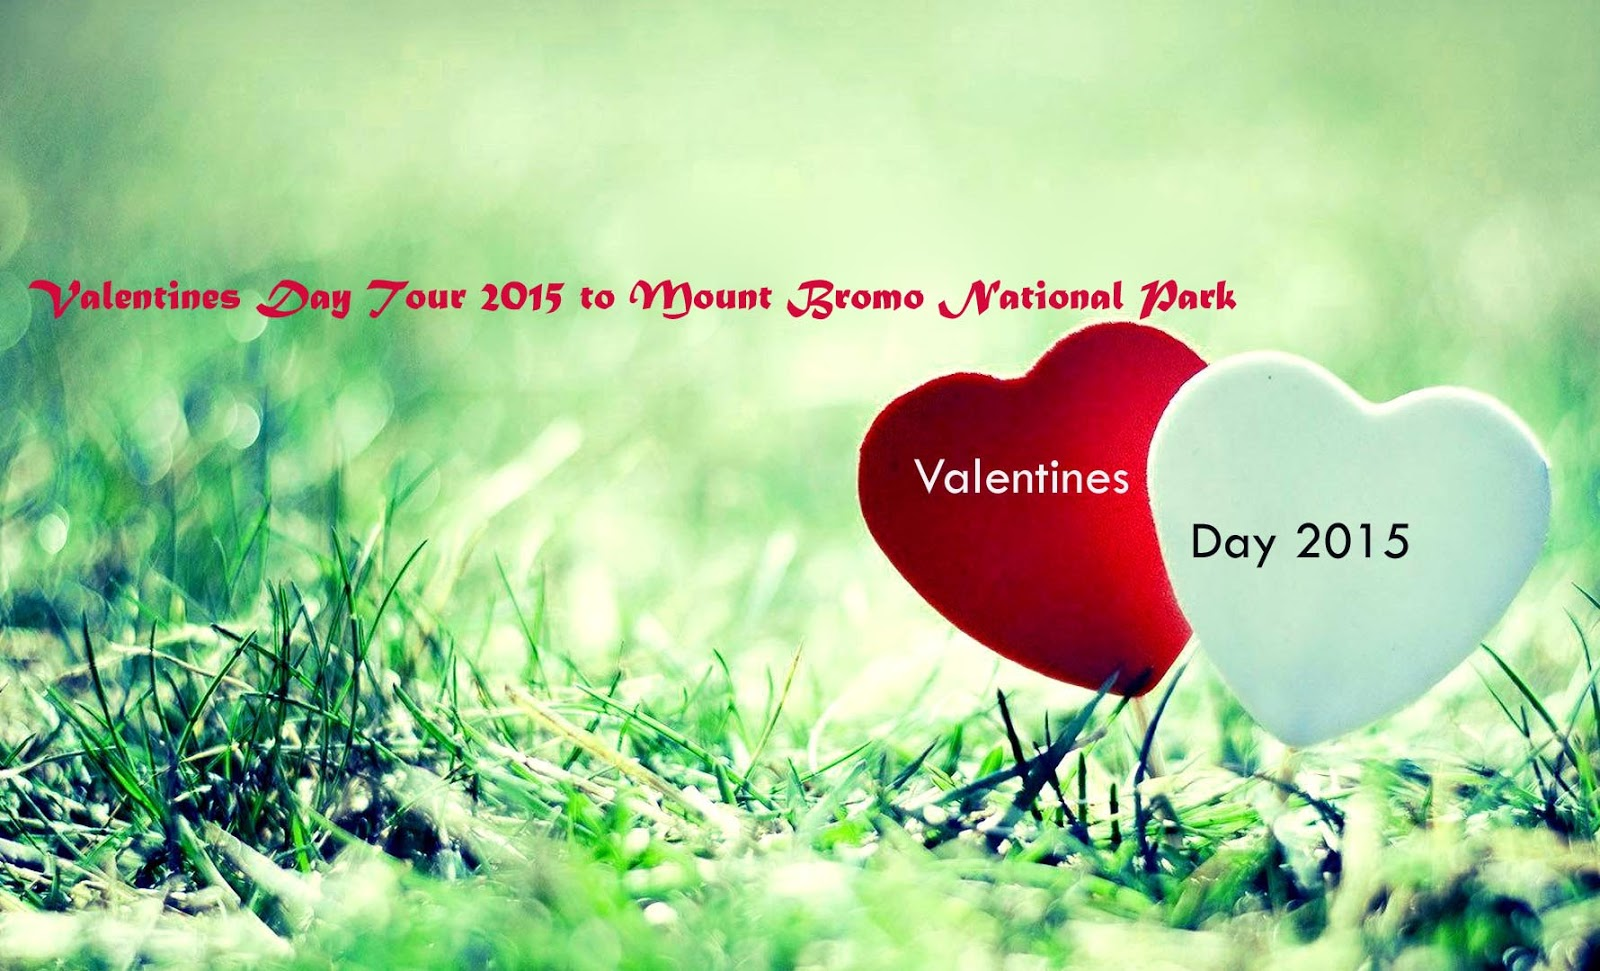 Valentines Day Tour to Mount Bromo National Park